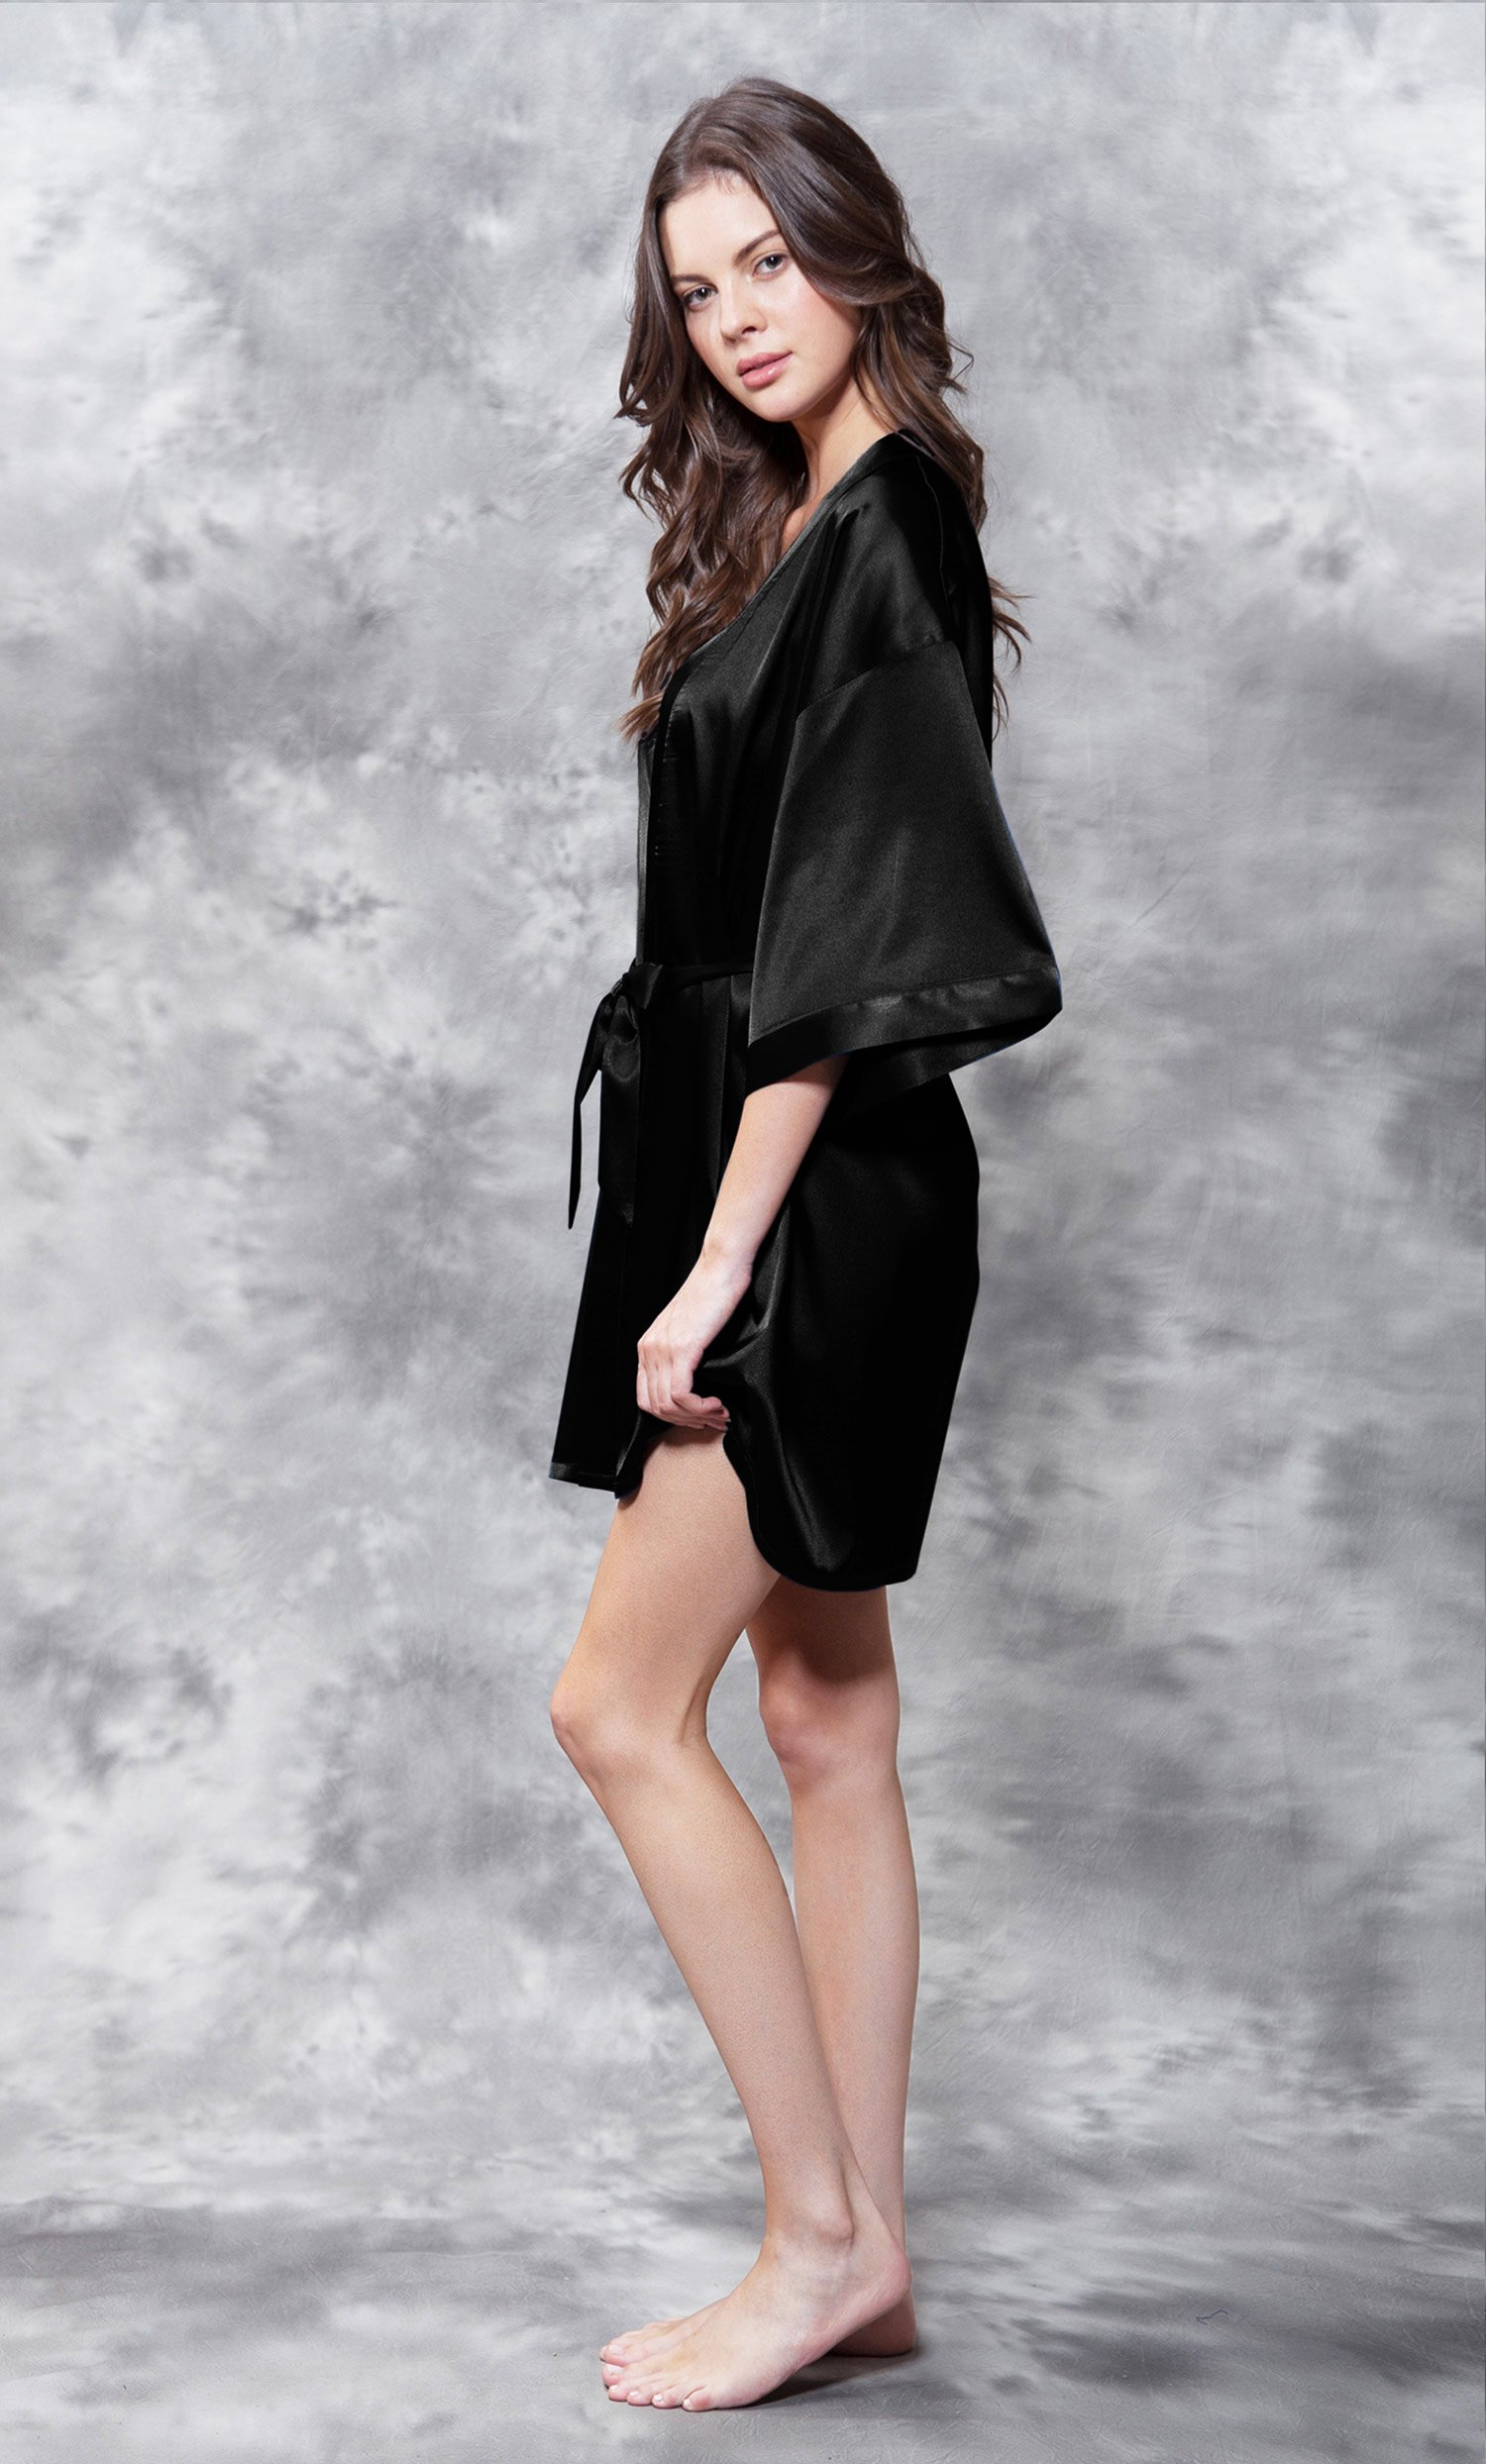 Maid of Honor Clear Rhinestone Satin Kimono Black Short Robe-Robemart.com